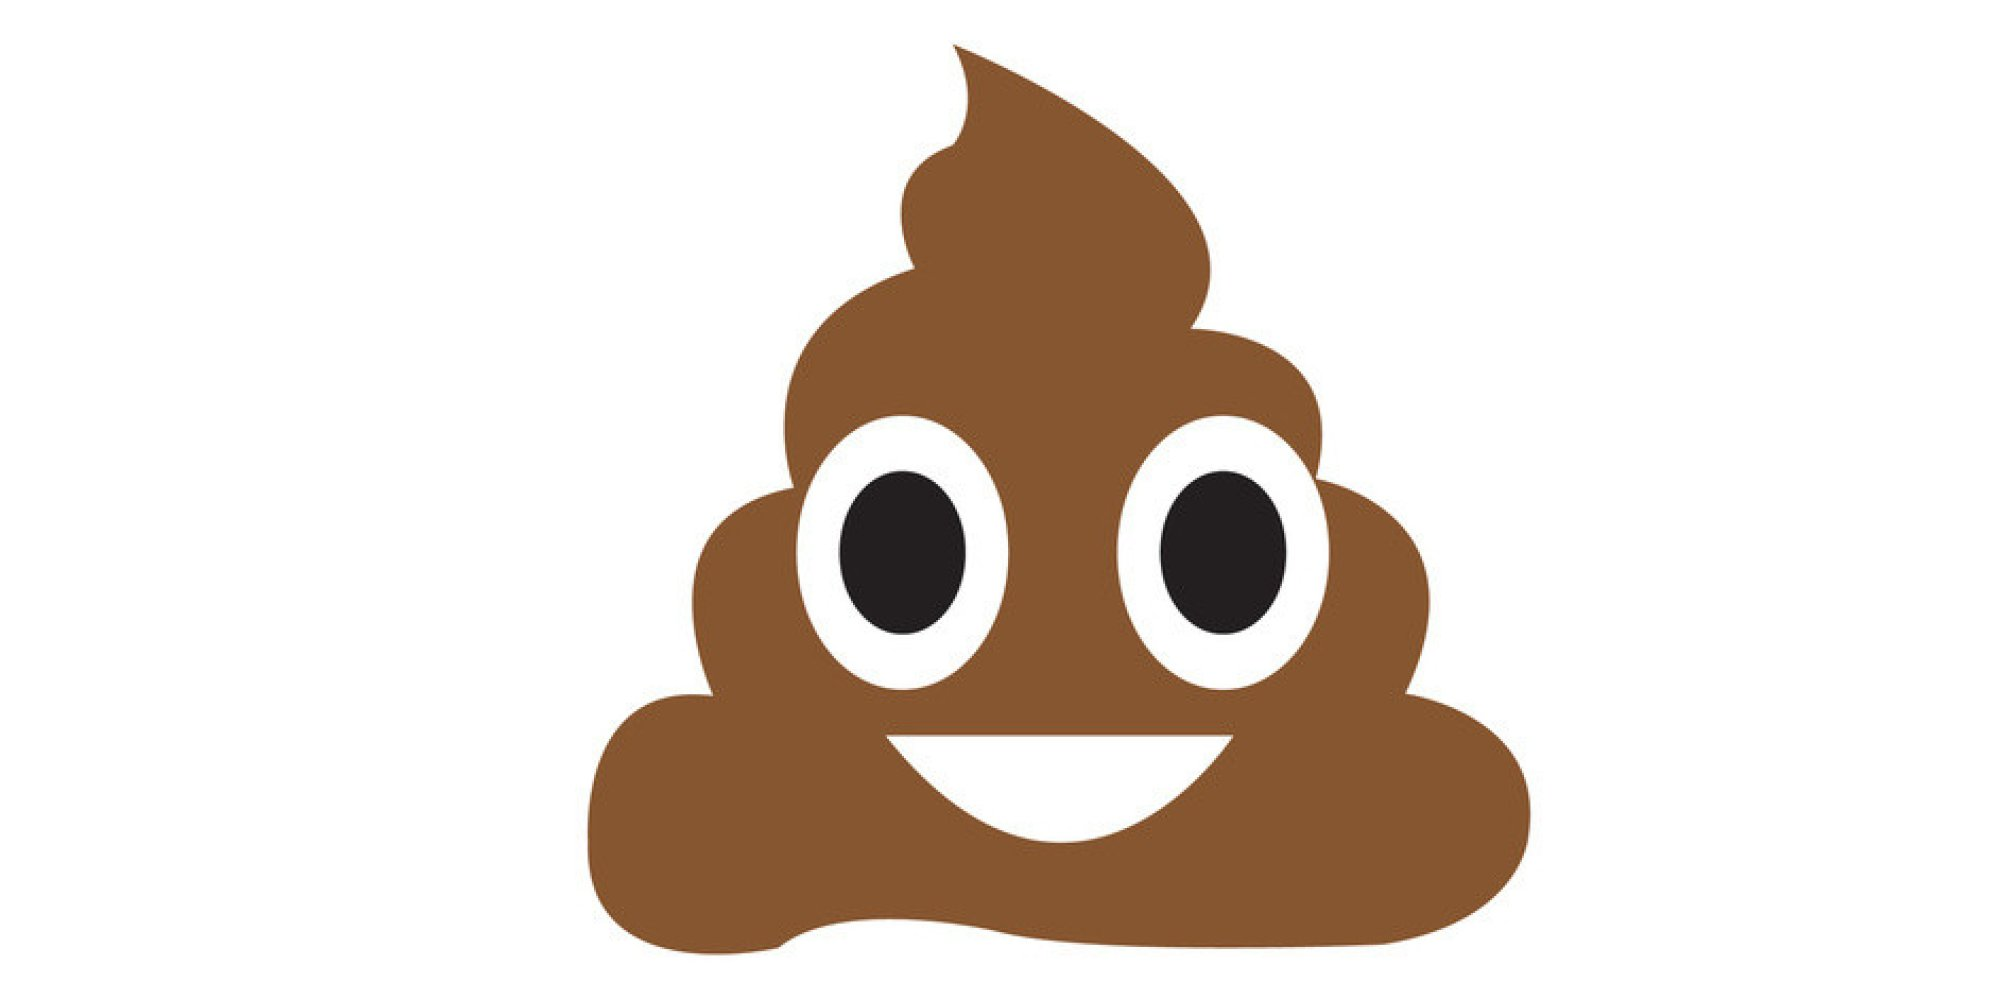 Poop clipart free clipart images.